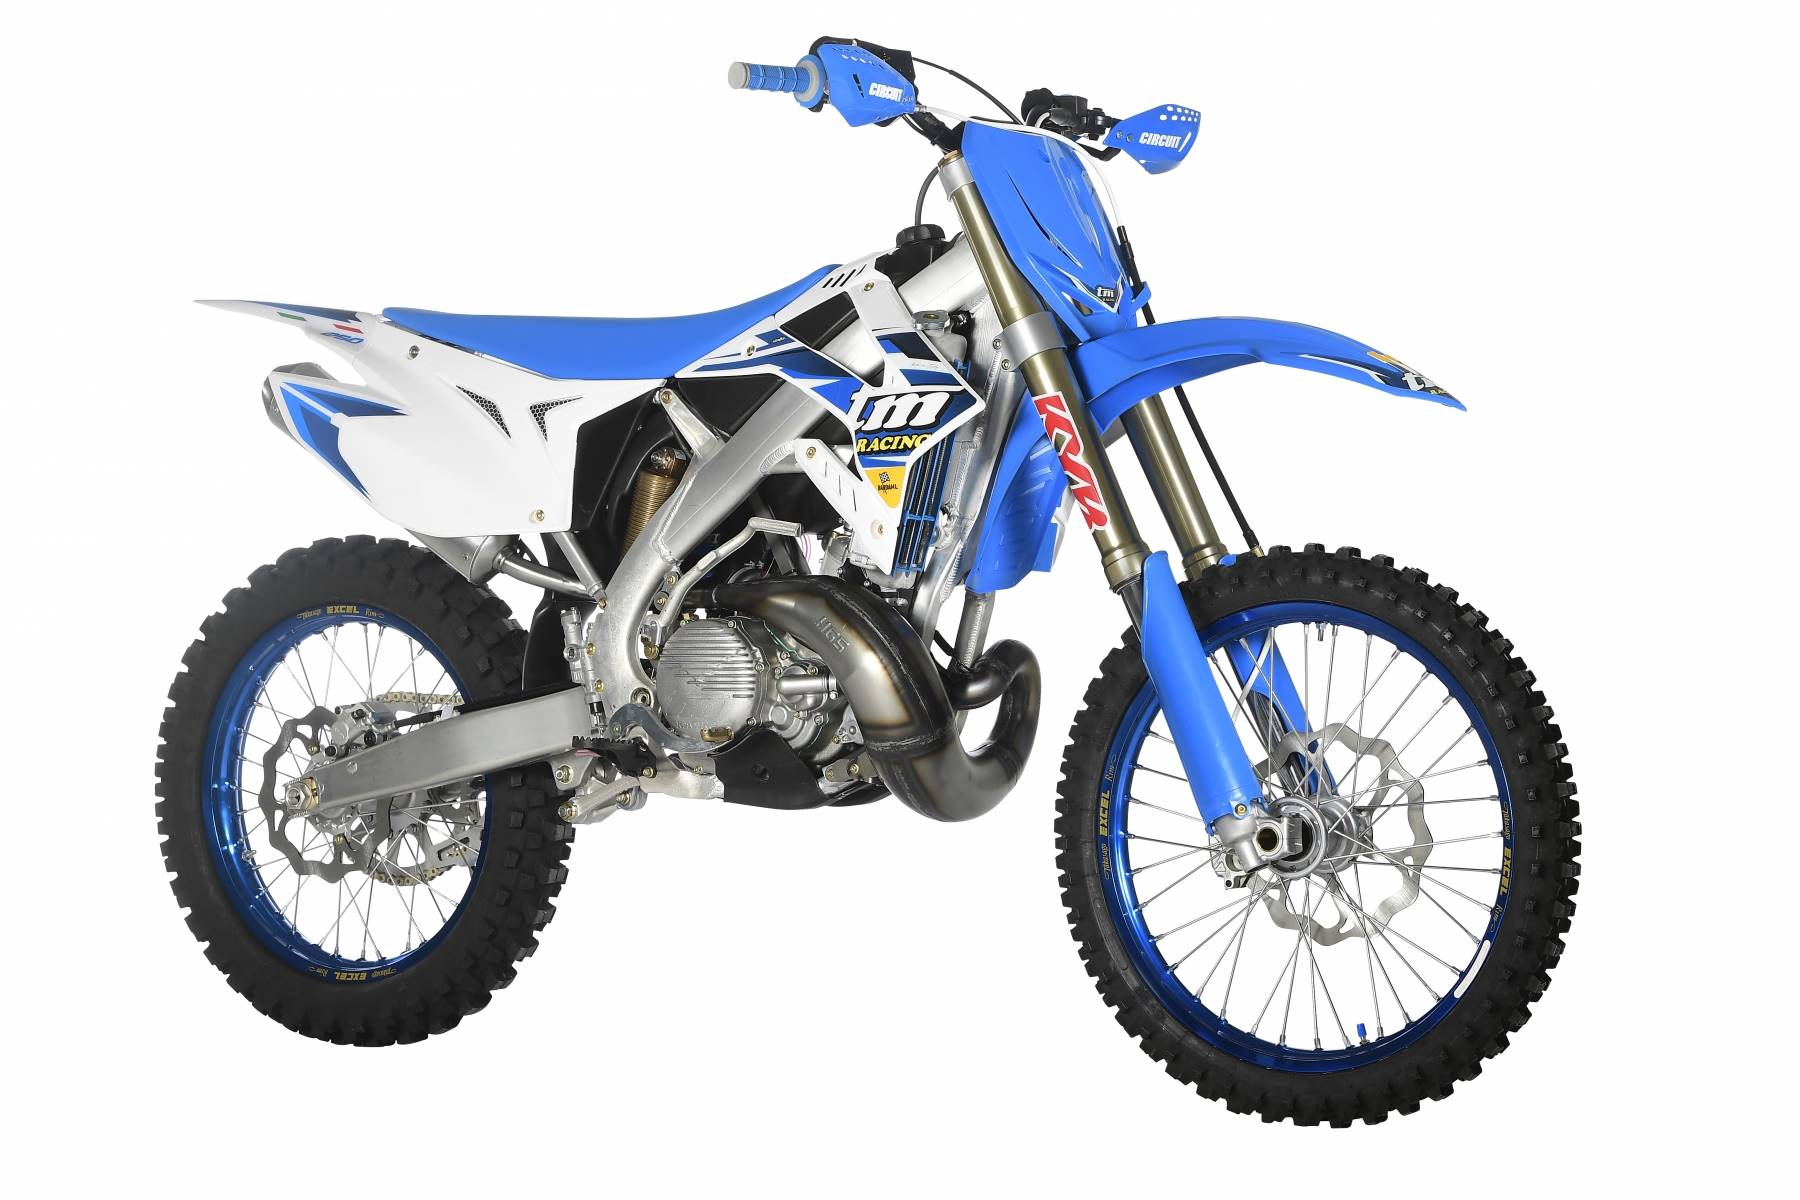 Tm Dirt Bikes >> 2019 Gravity Tm Racing En 250 In Olathe Kansas